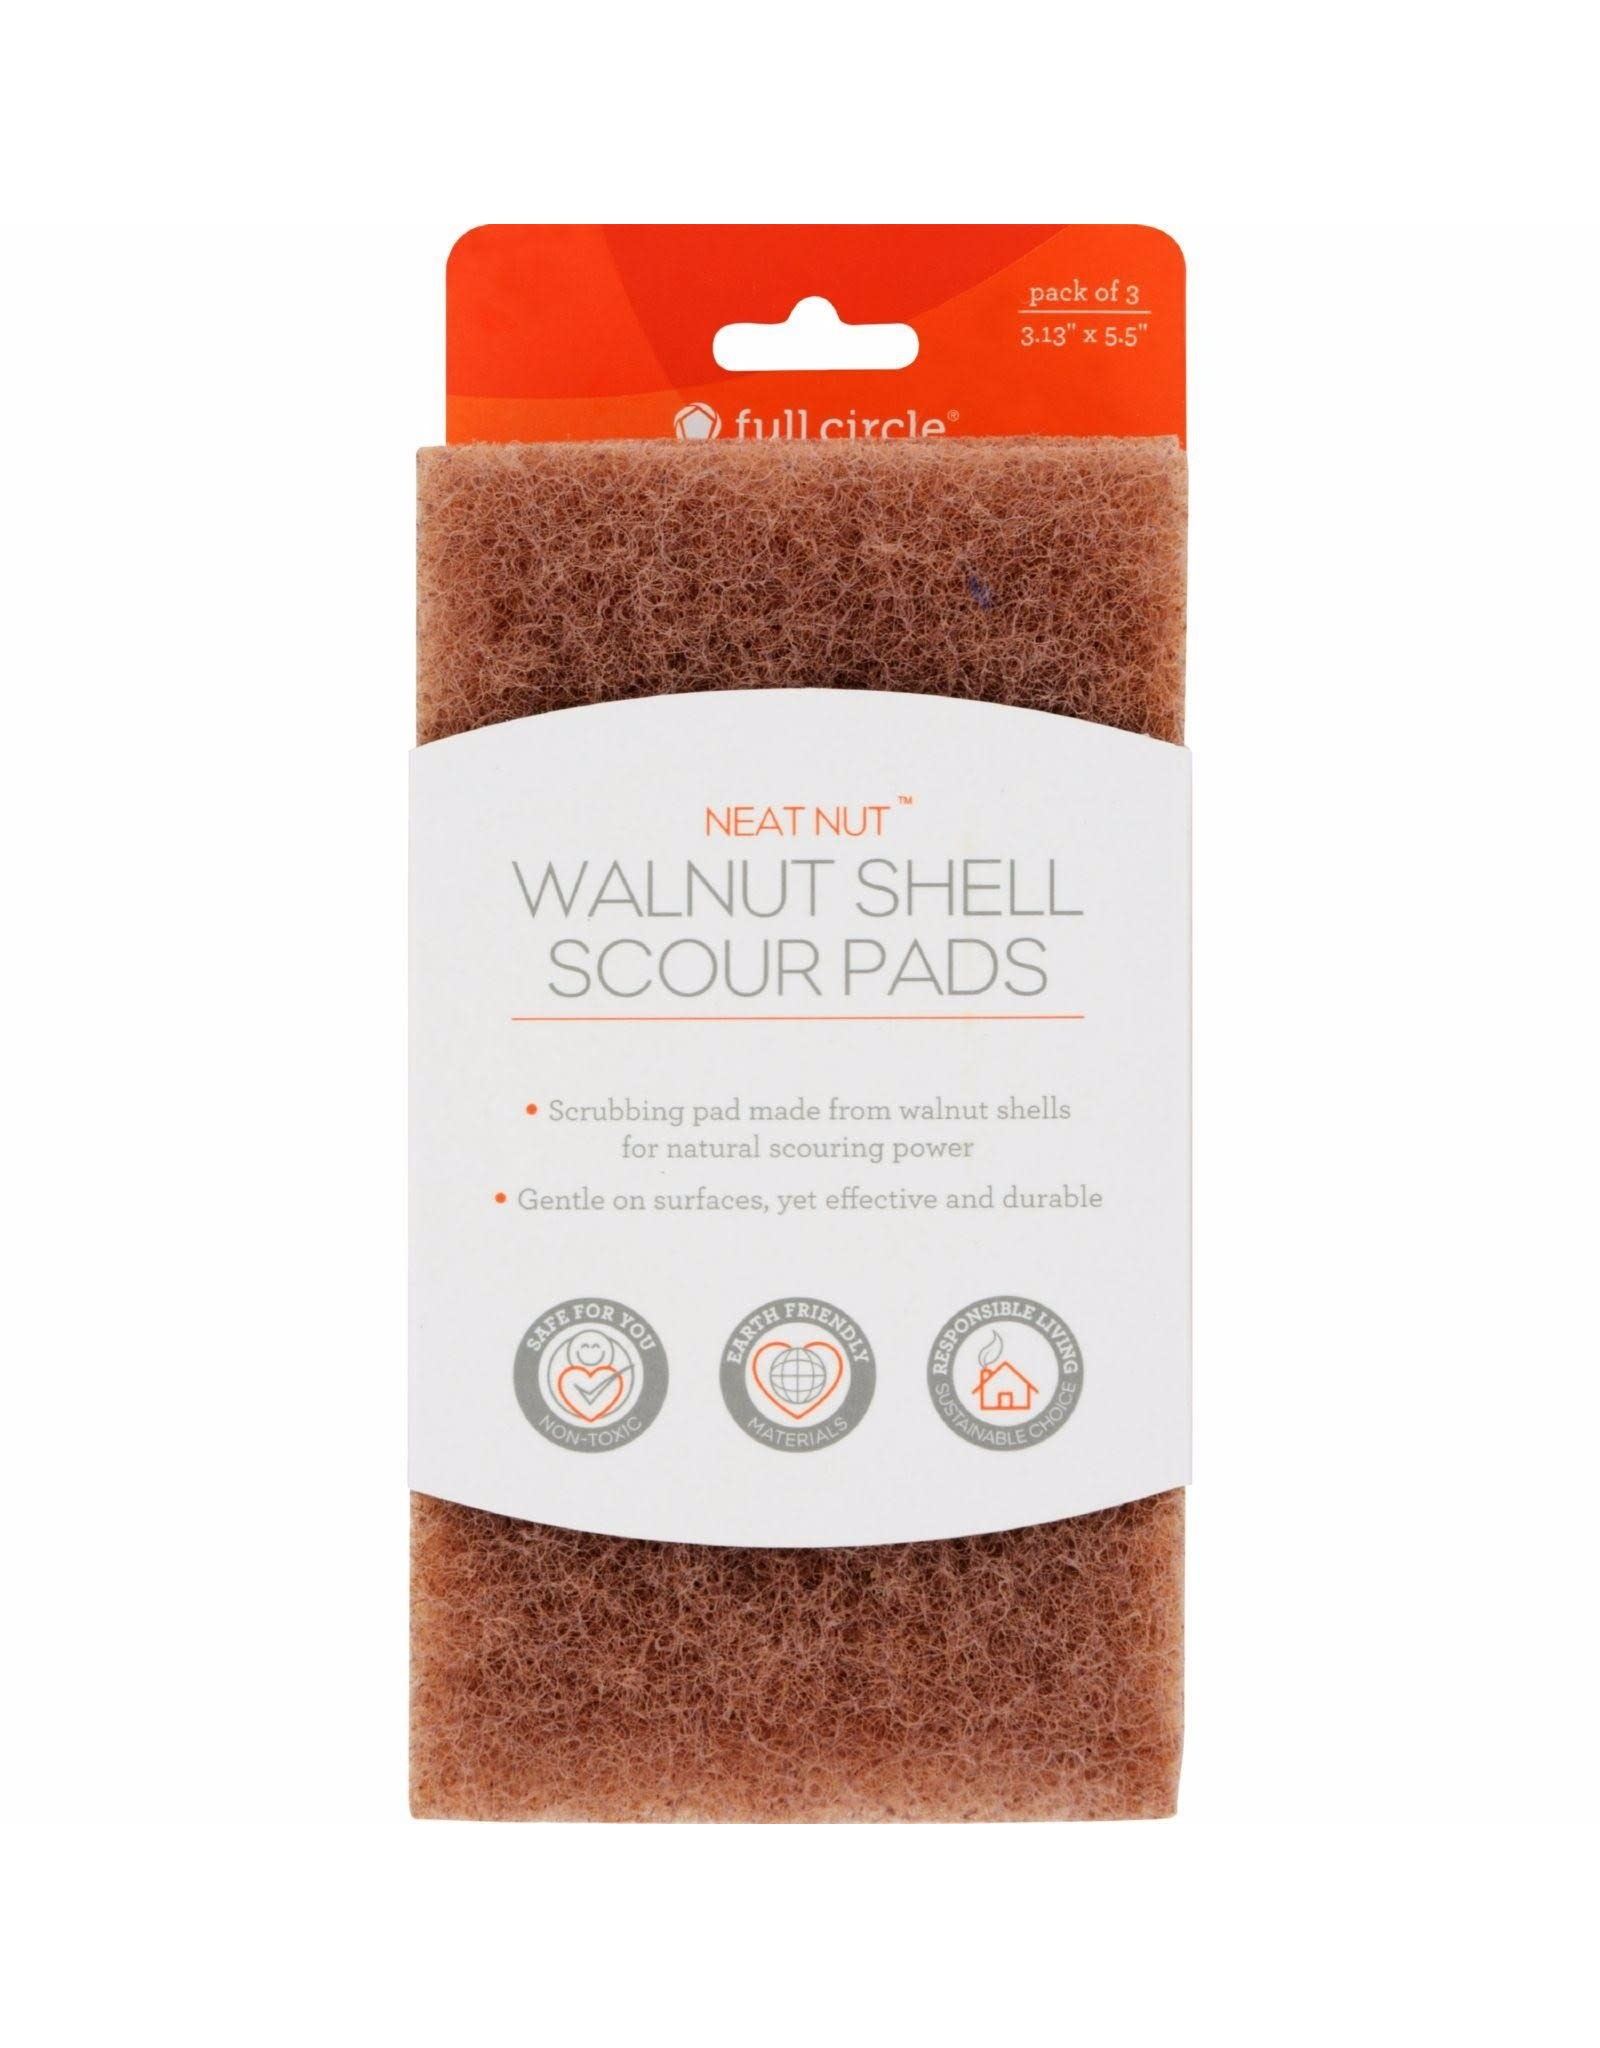 The Unscented Company Walnut Scour Pads